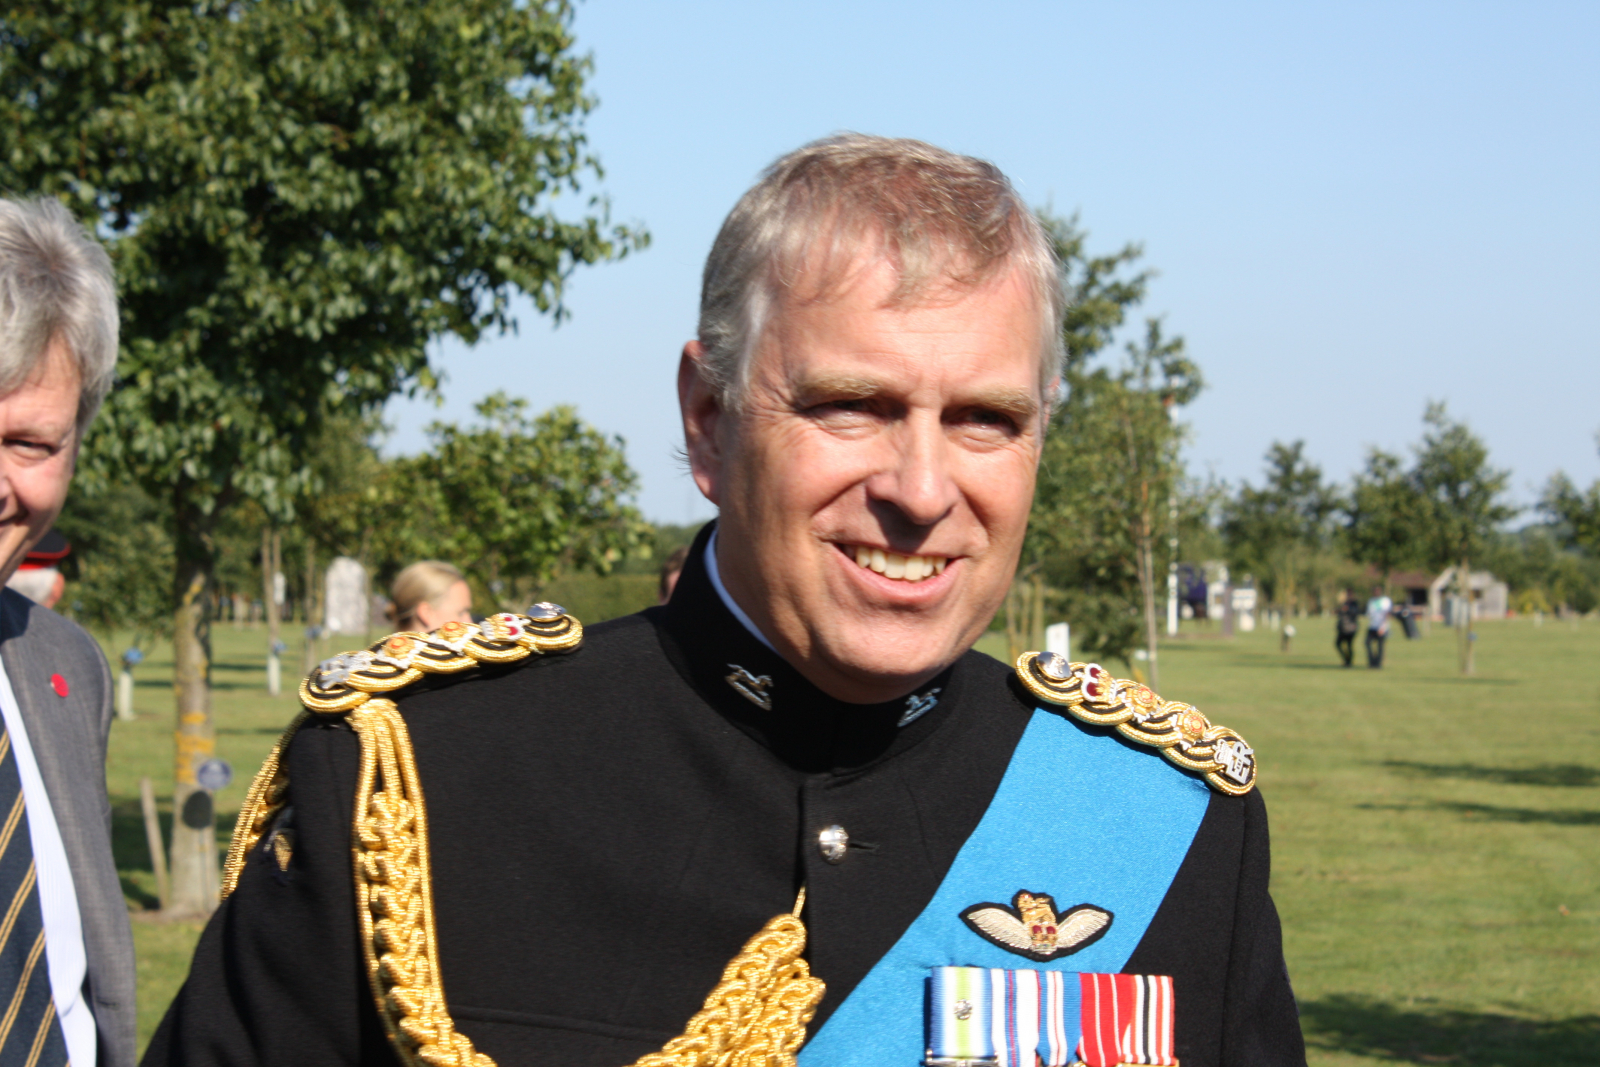 Prince Andrew steps down from public duties